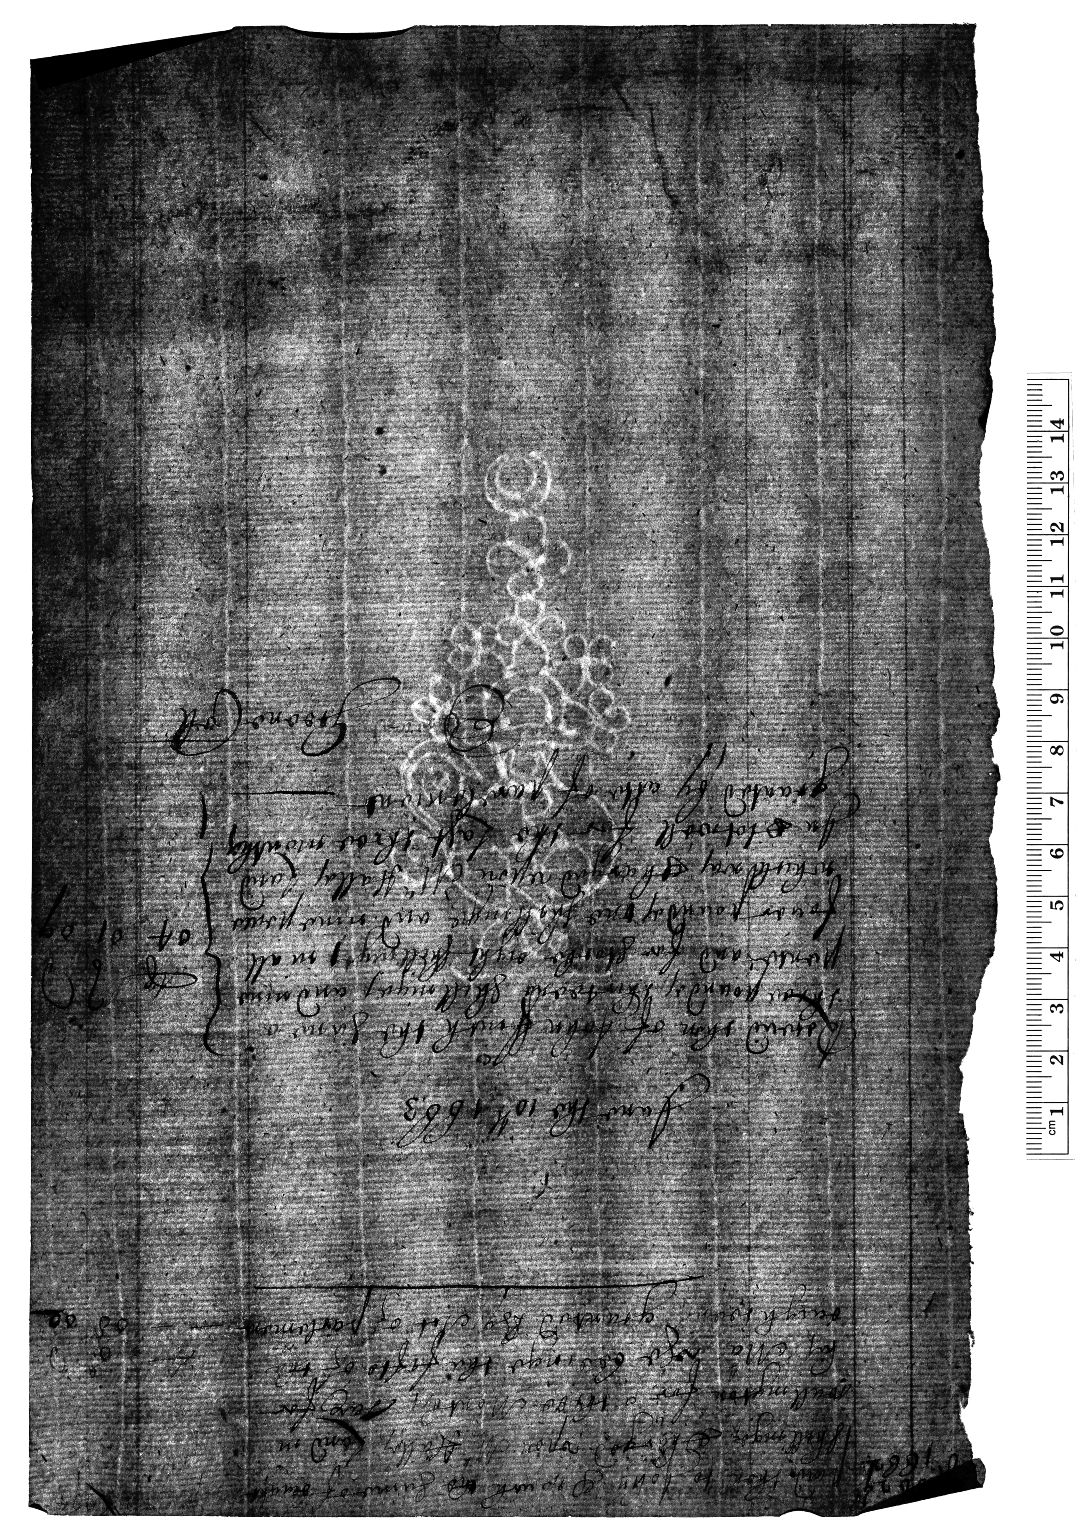 Account of taxes on Mr. Hale's land in Wallington and Clotwell